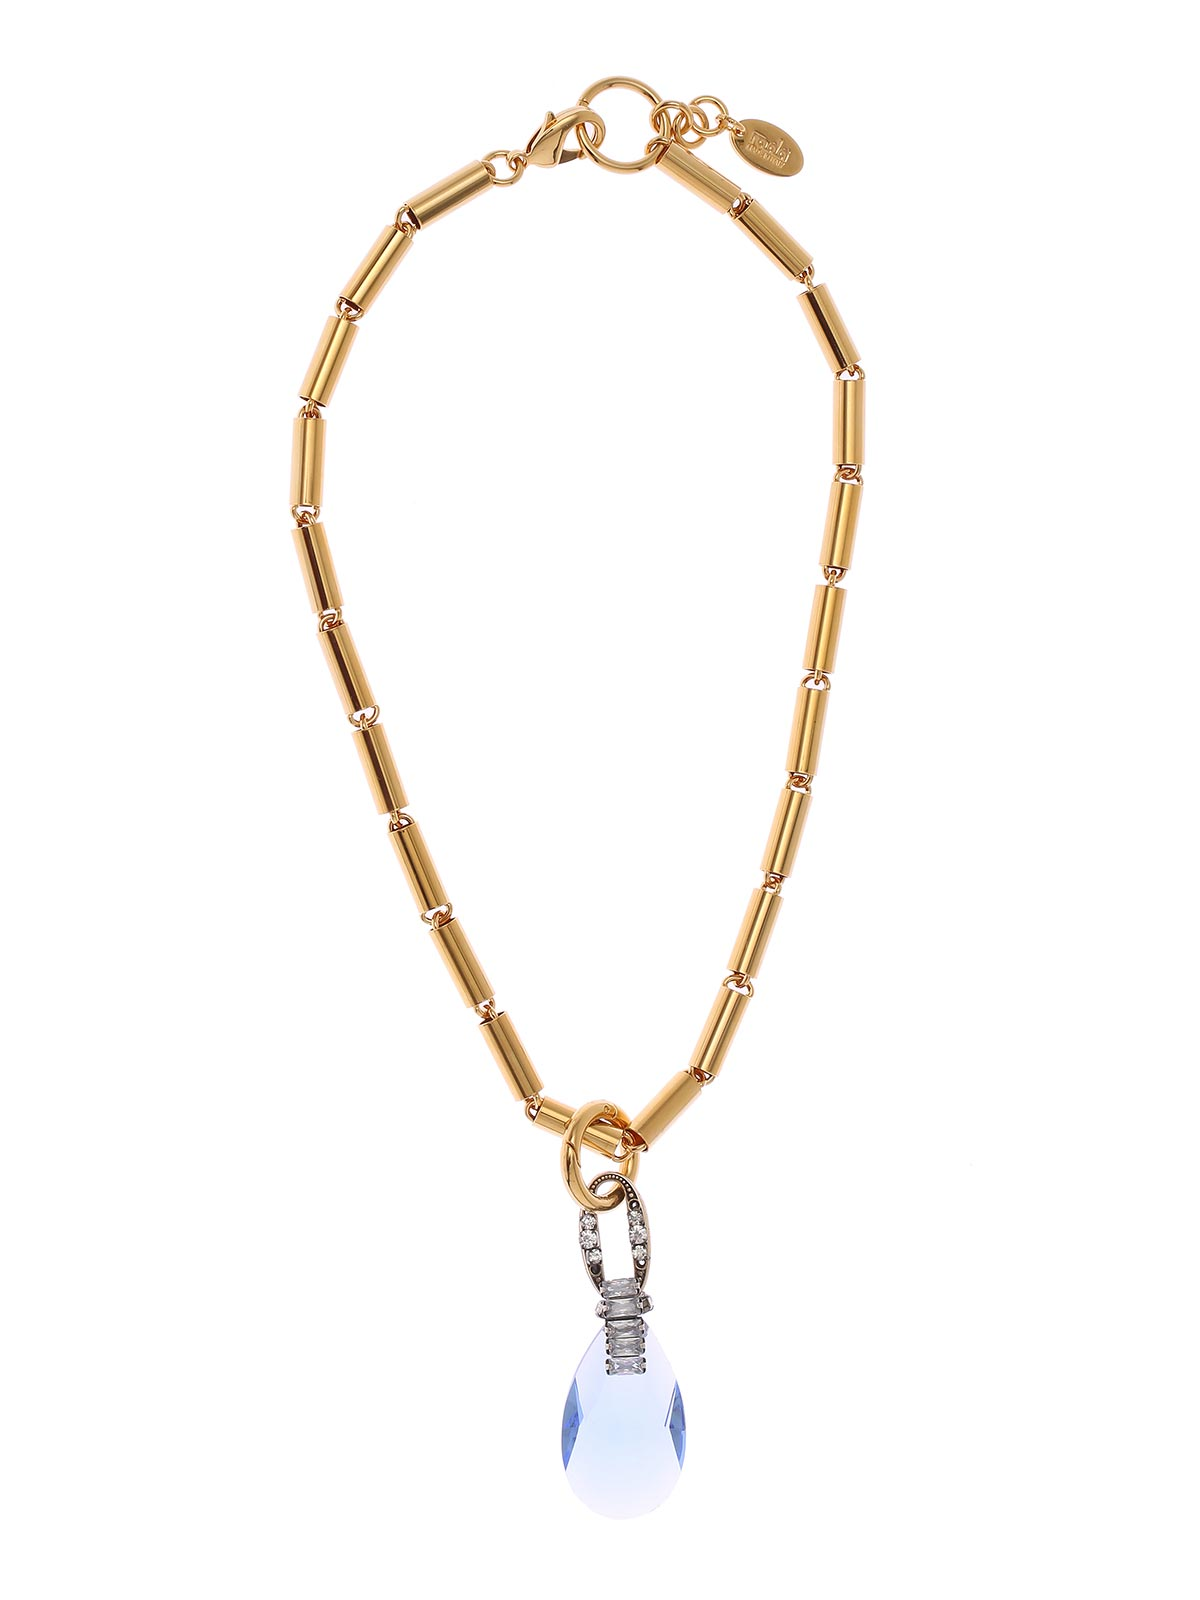 Brass necklace with metal tubes and jewel pendant